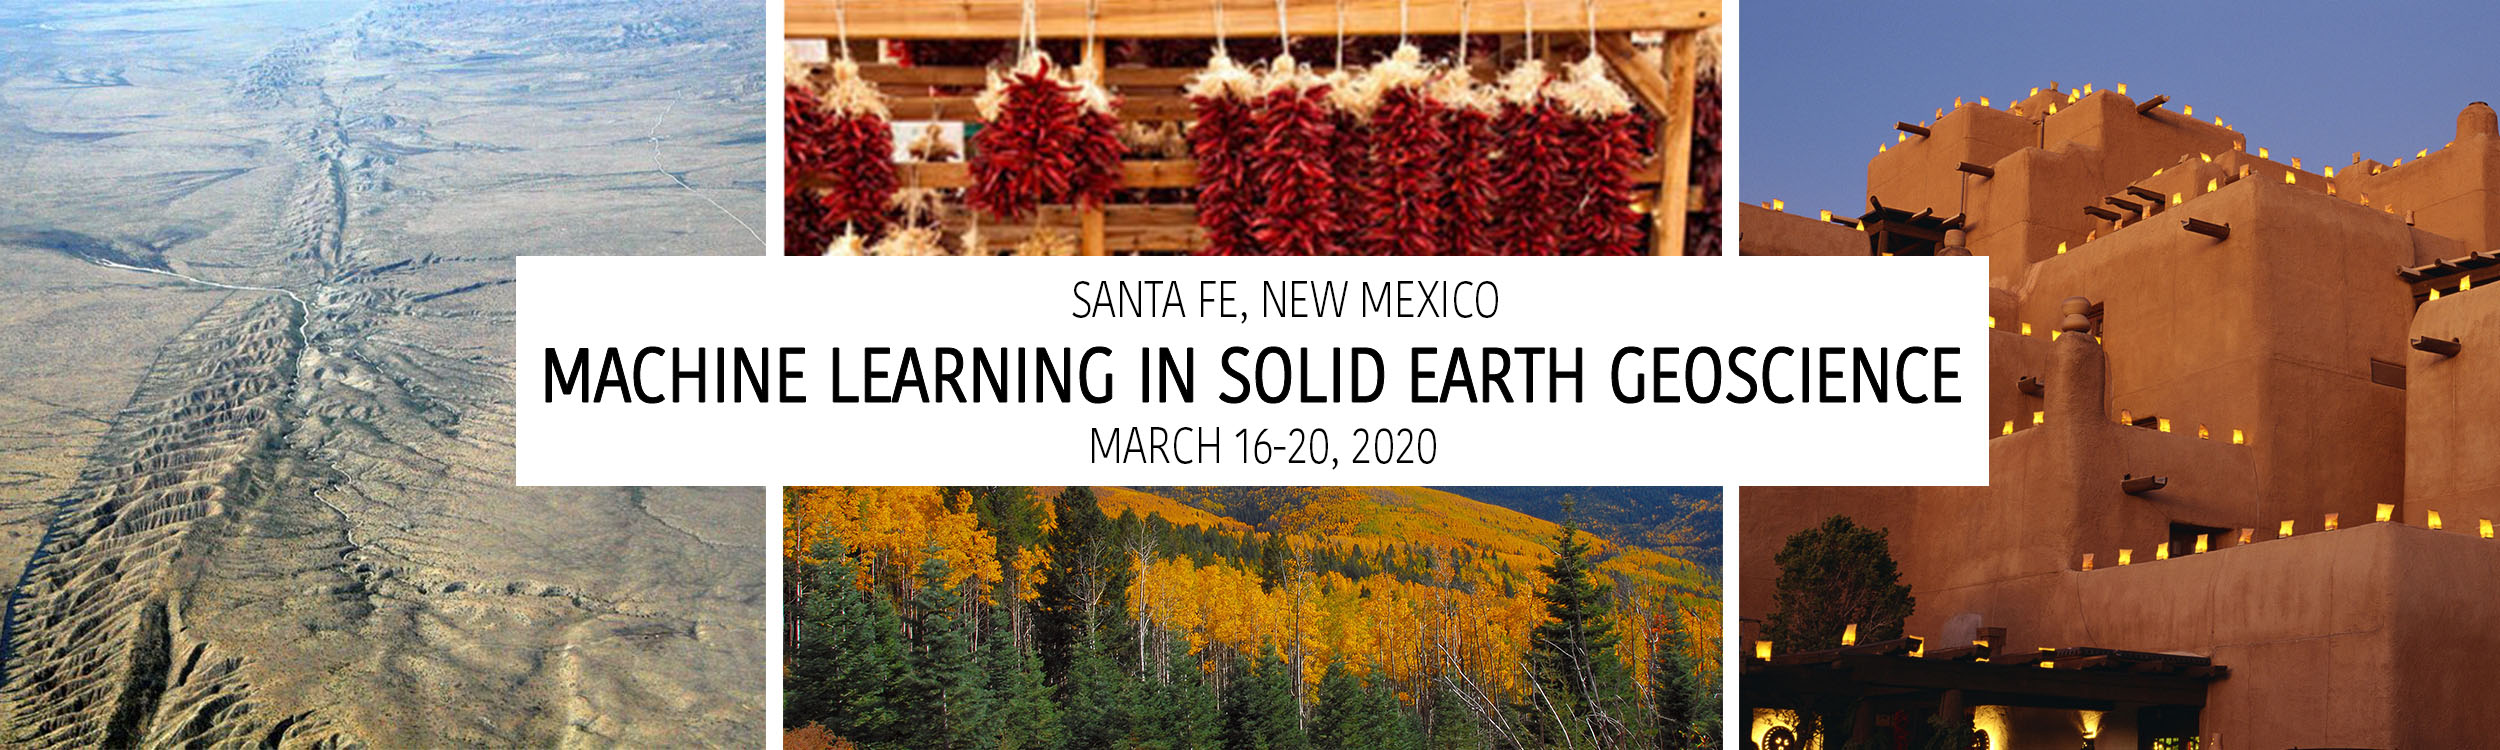 3rd Annual Machine Learning in Solid Earth Geoscience